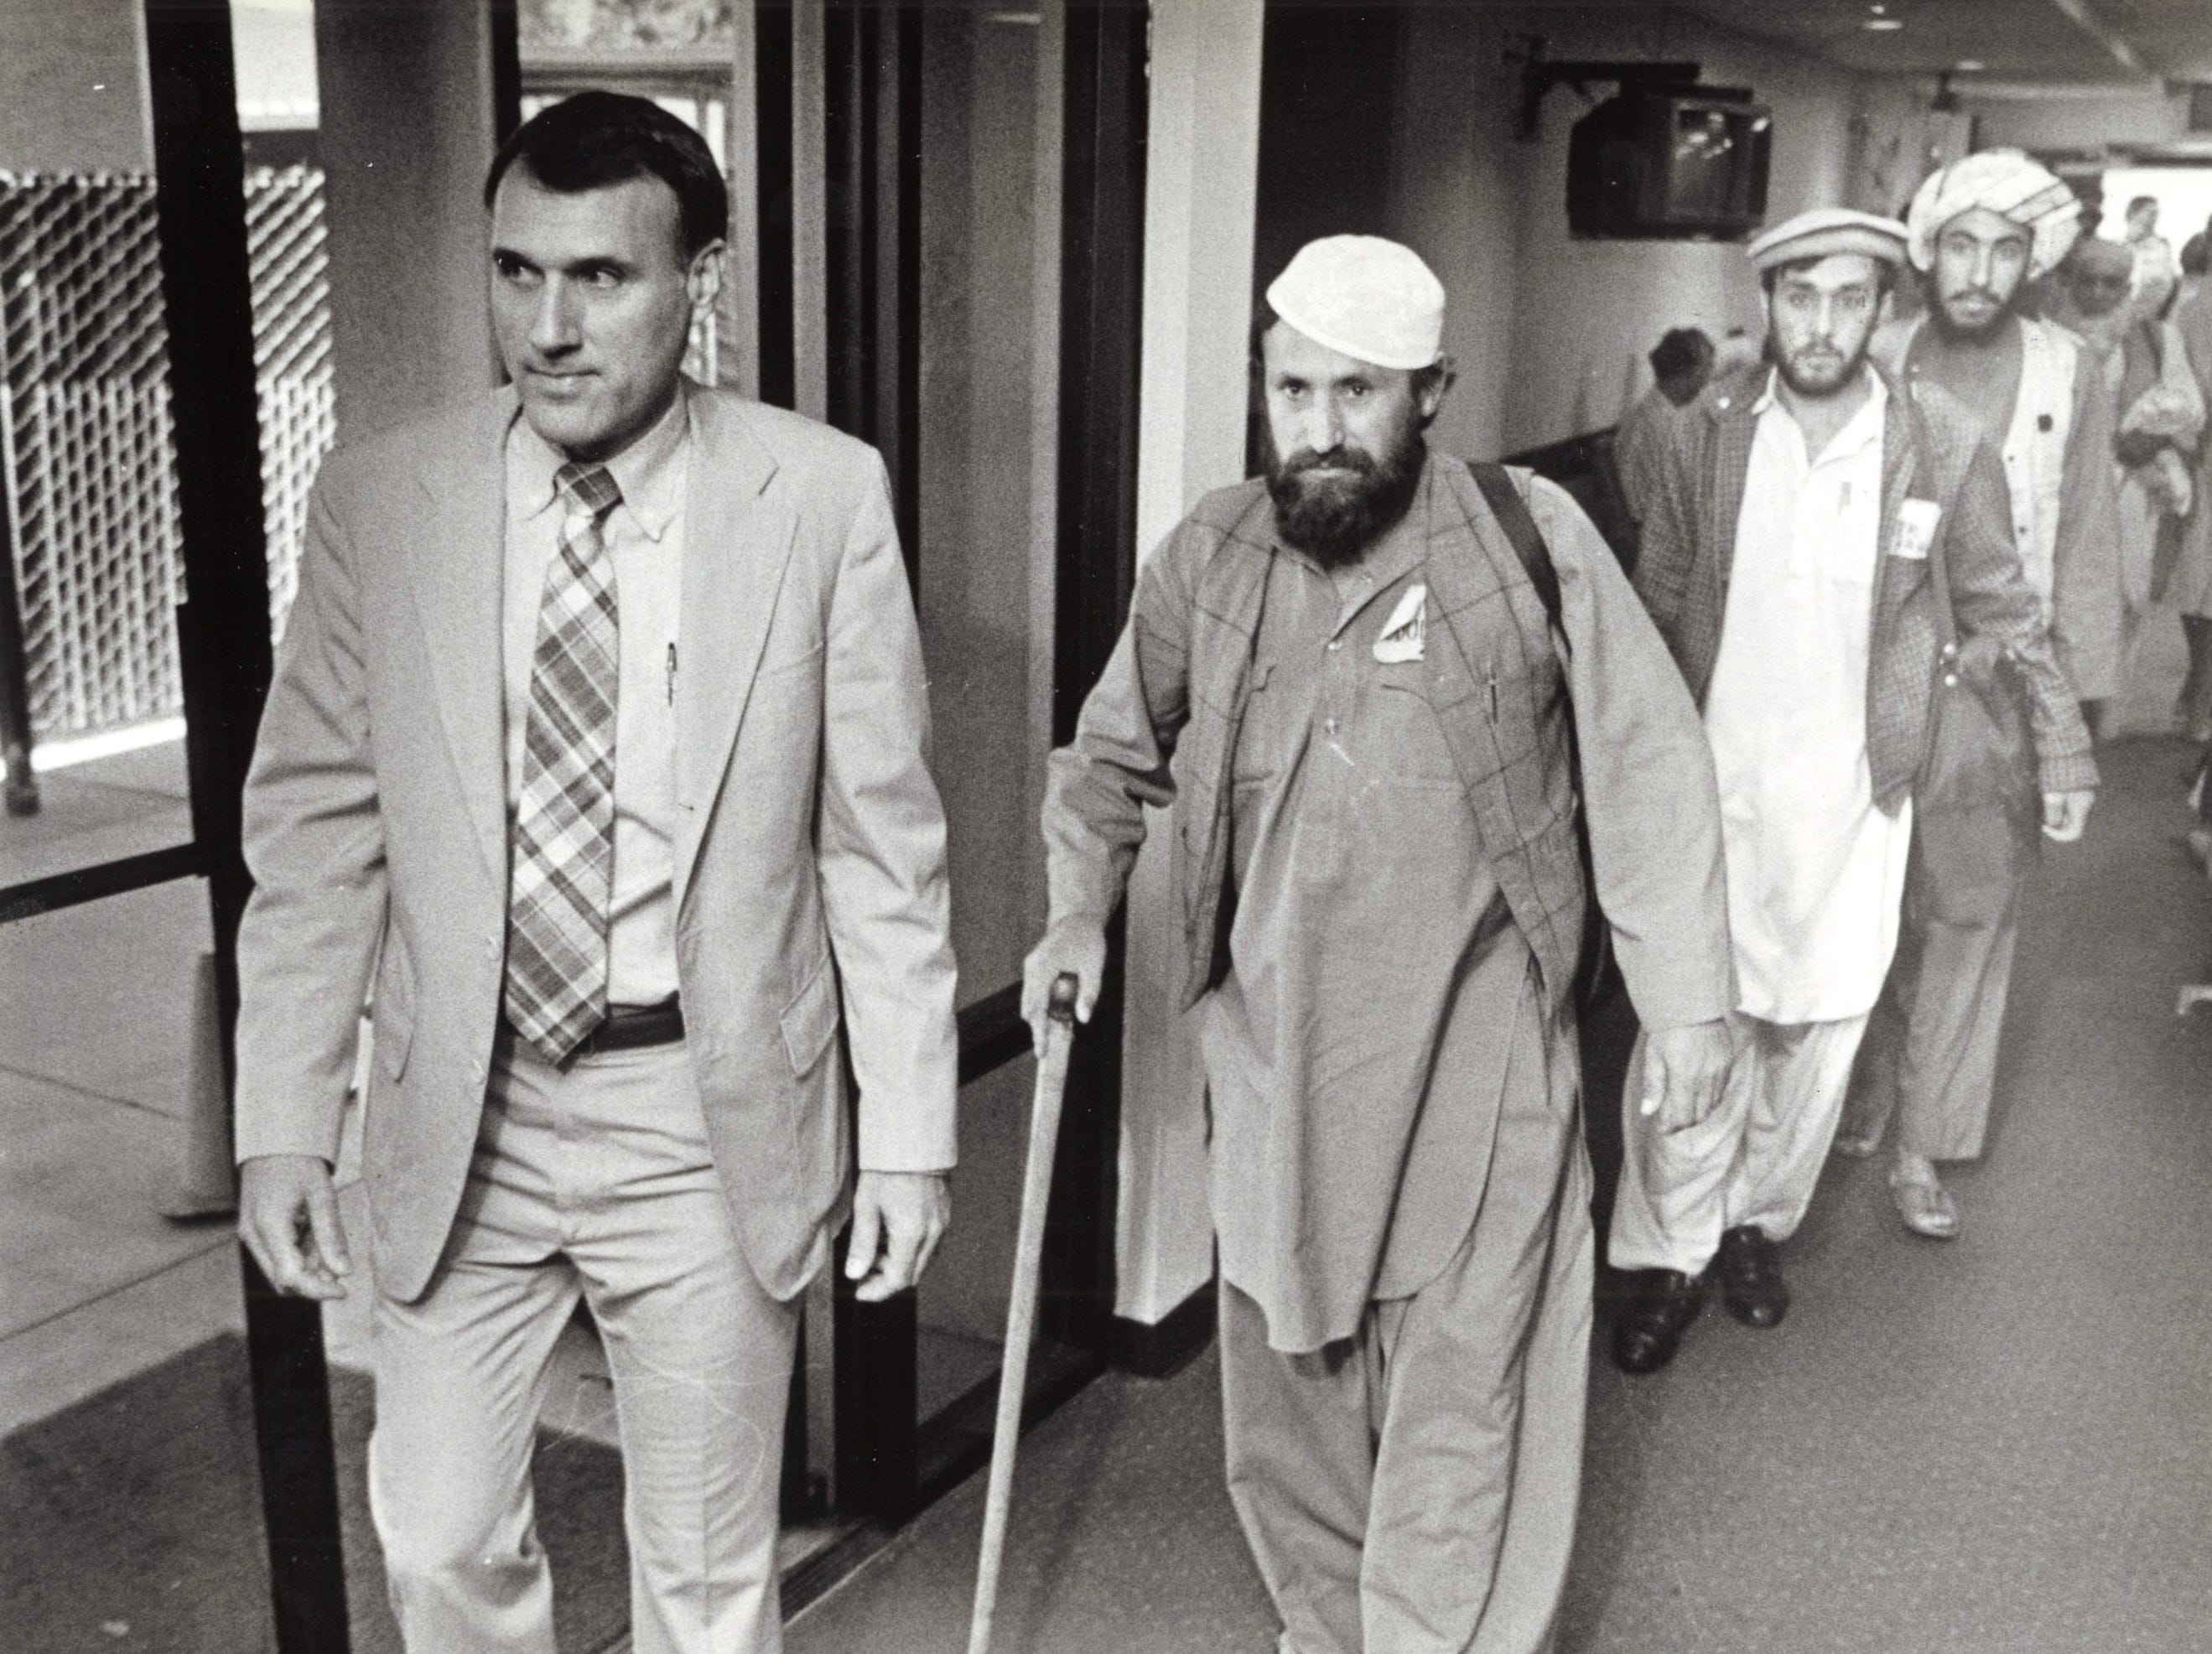 Arizona Rep. Jon Kyl walks with Afgan freedom fighters who were wounded by Russians in their home country, May 26, 1987.